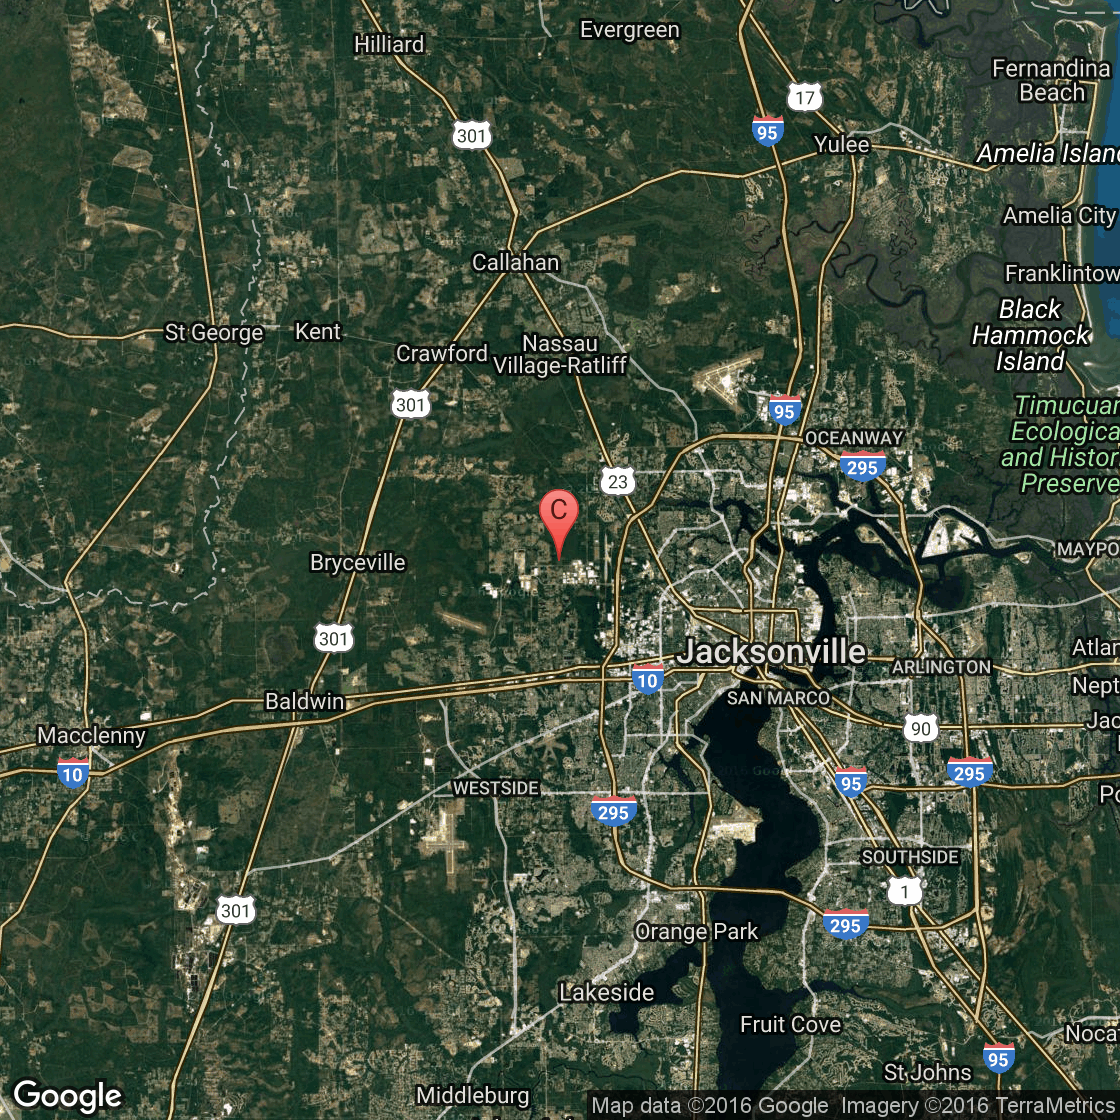 Northwest Florida Tourist Attractions – Florida Tourist Attractions Map